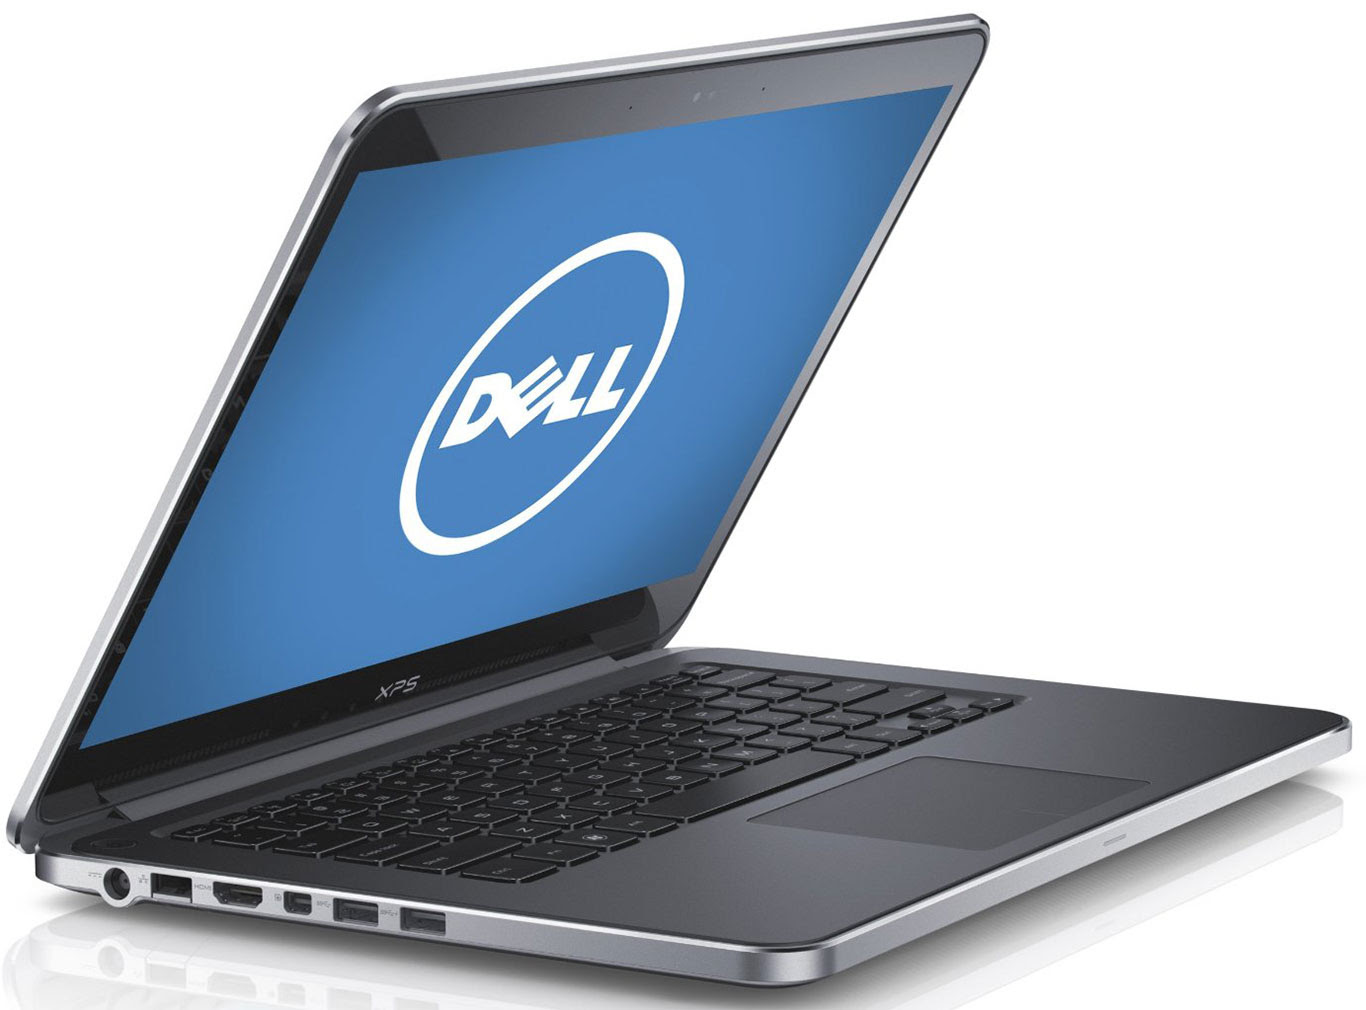 Dell XPS 14 L421X instruction manual and user guide